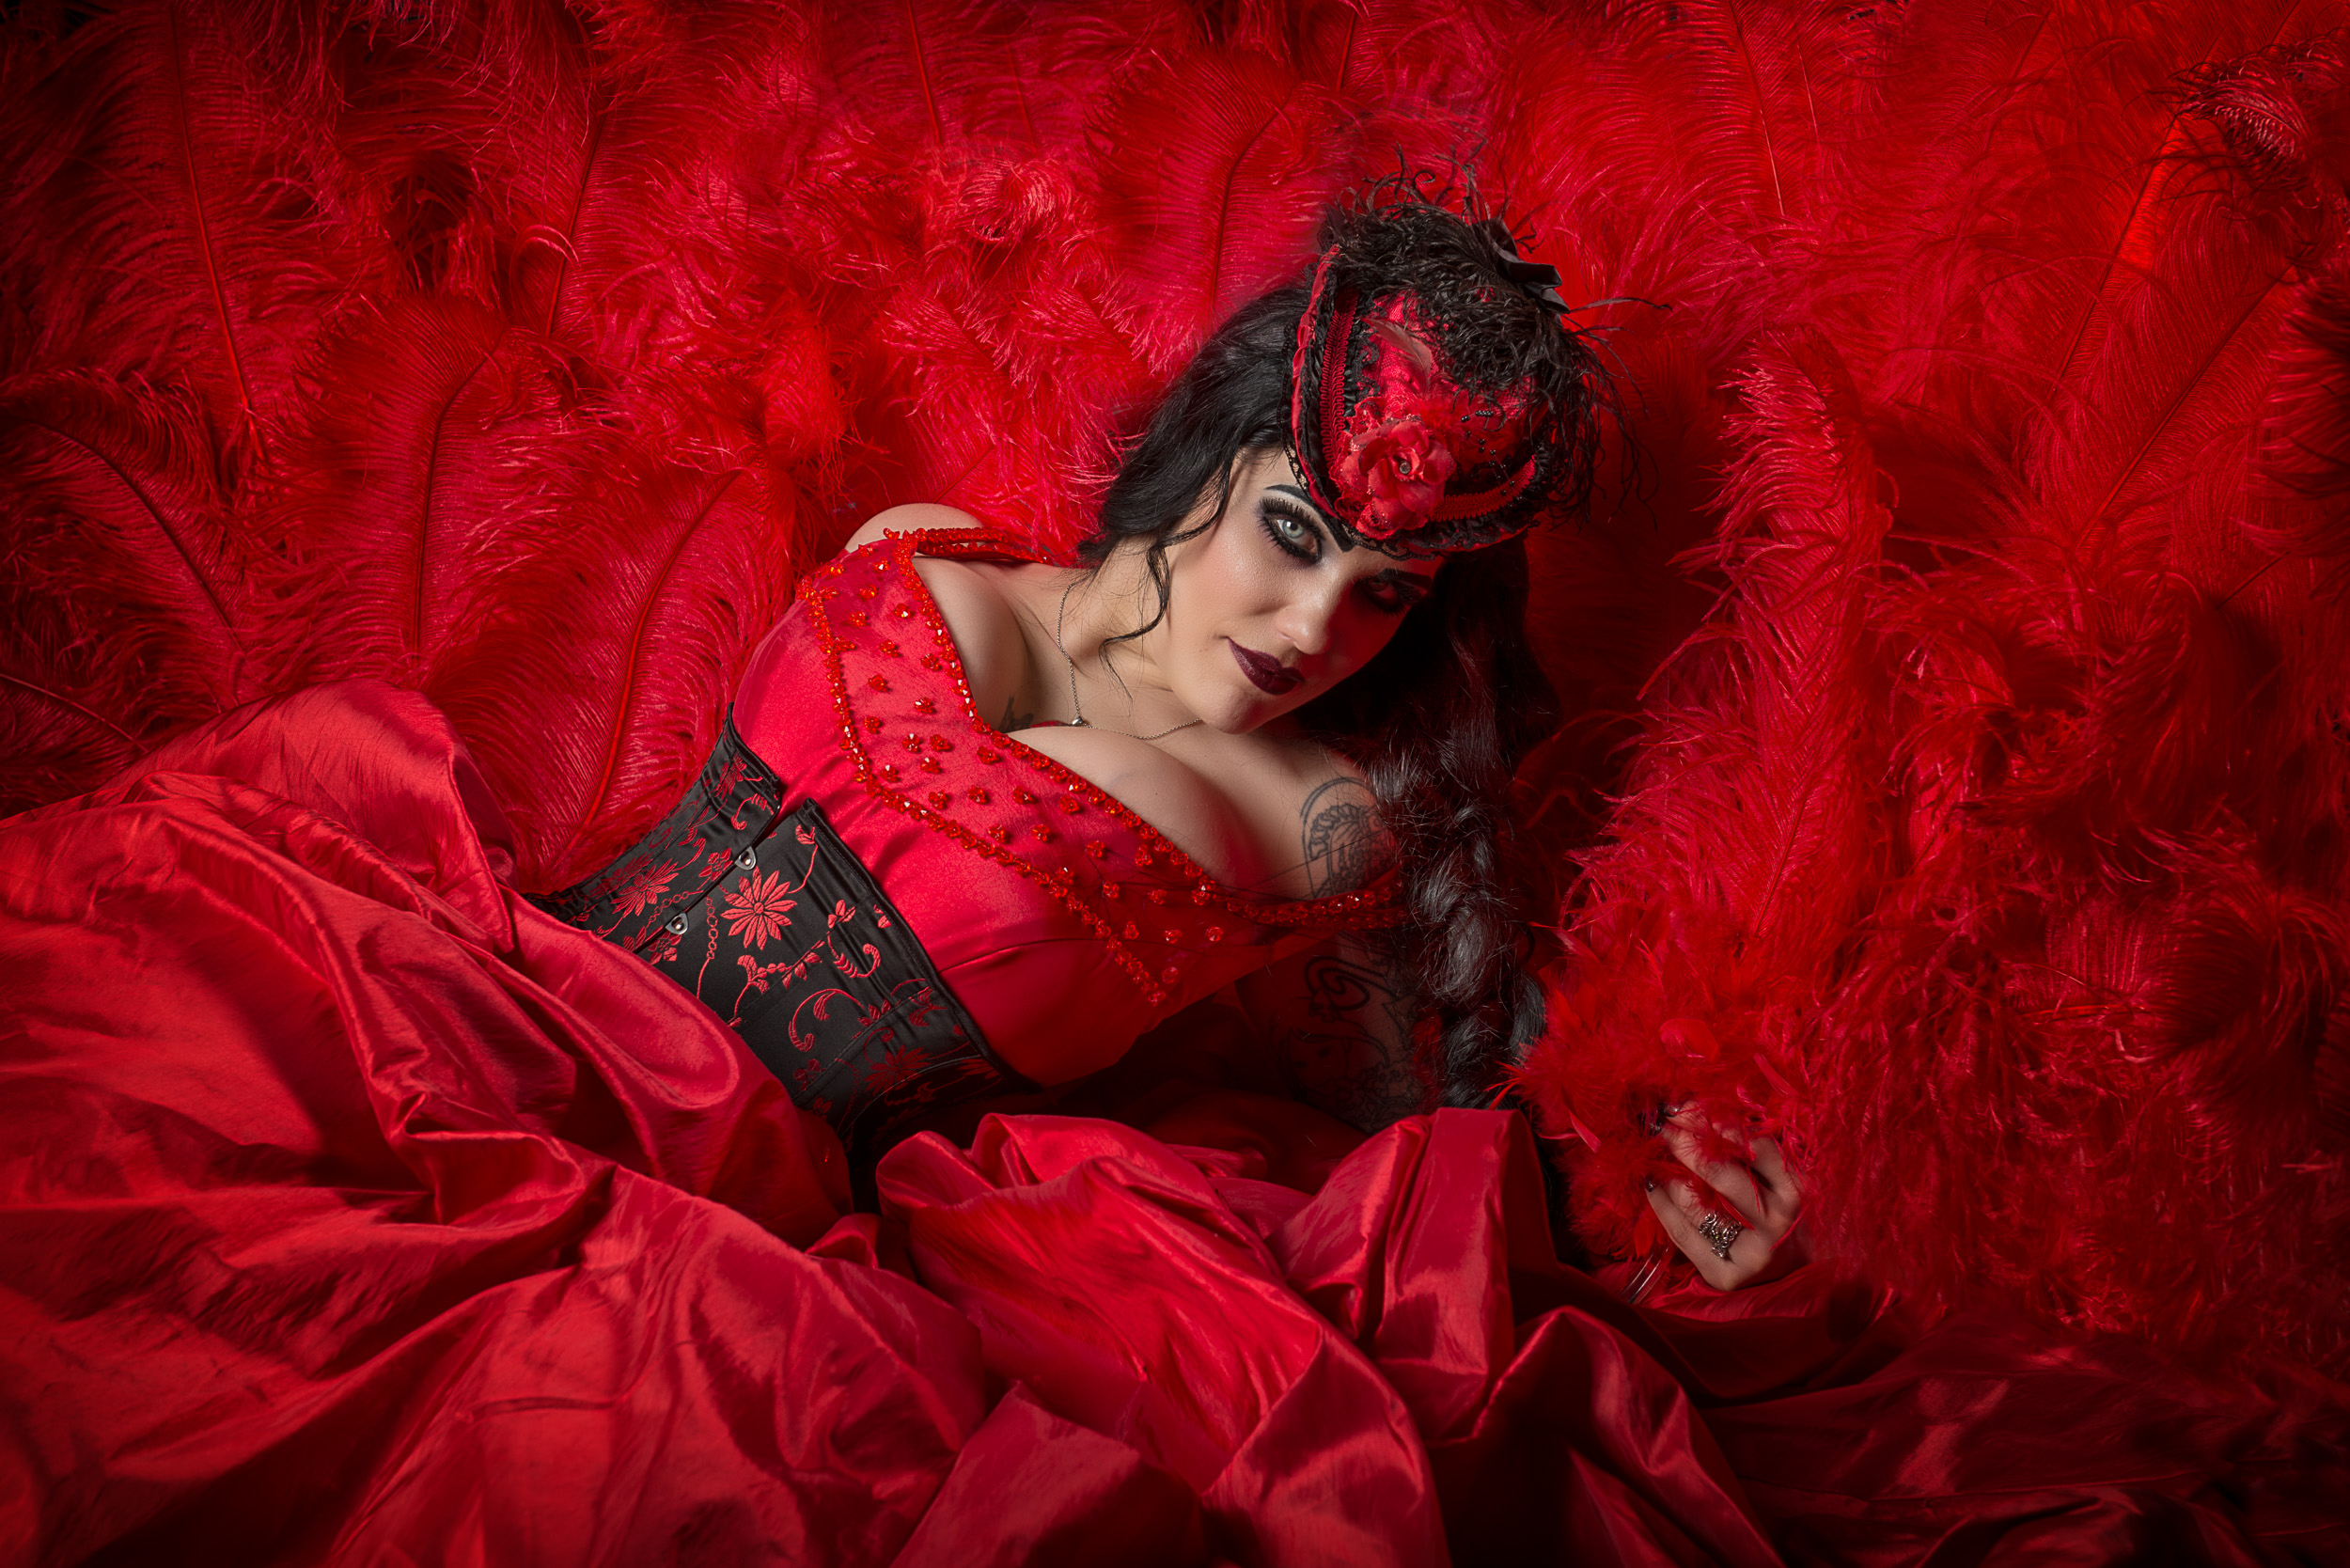 Seeing Red - Studio session with burlesque dancer Contessa Oblivion, photographed by Paul Davis Photography, Tucson, Arizona.